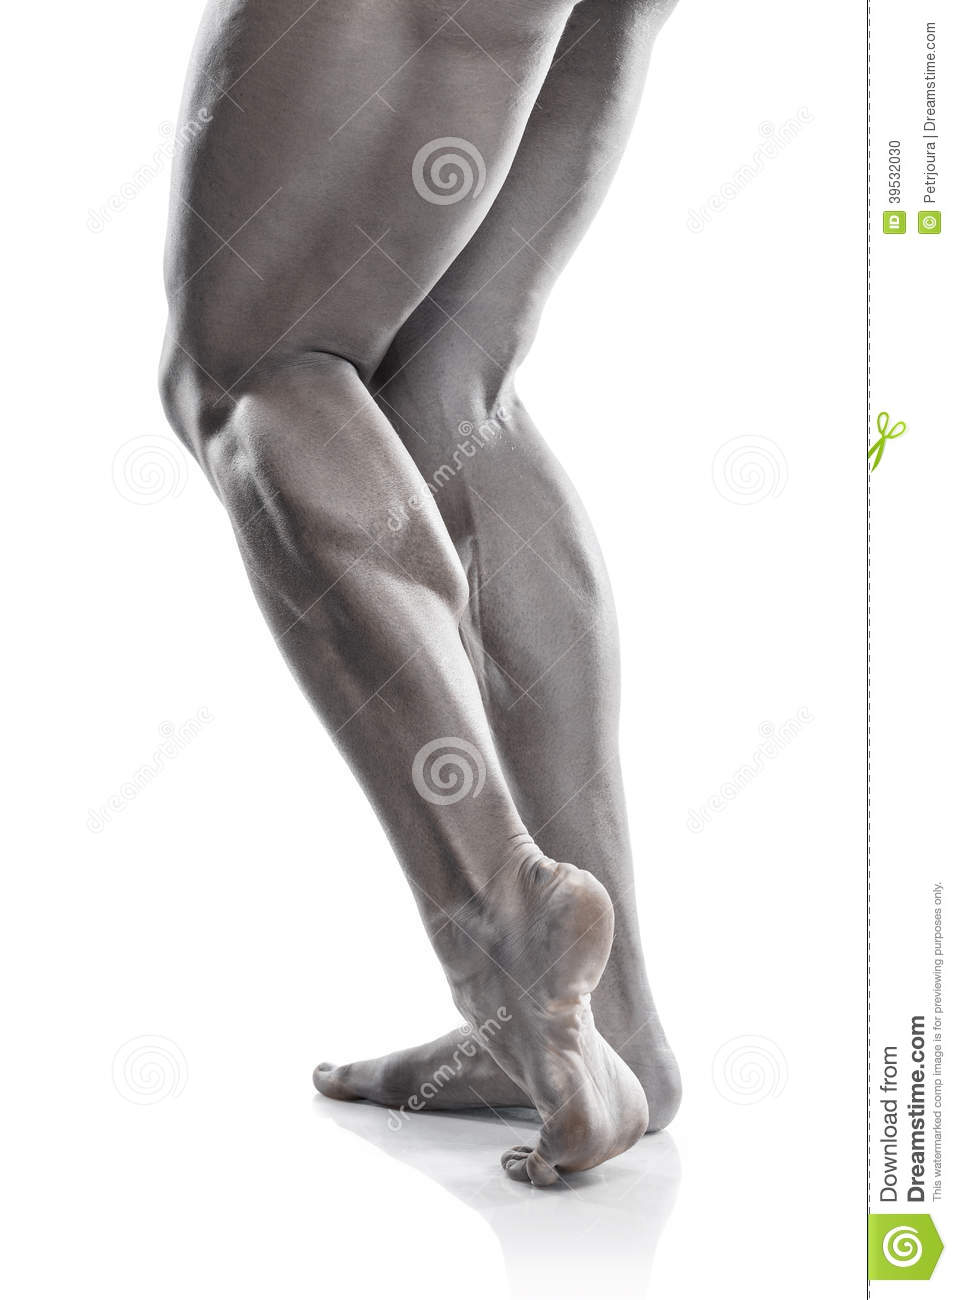 Strong Athletic Man Fitness Model Torso showing muscular legs